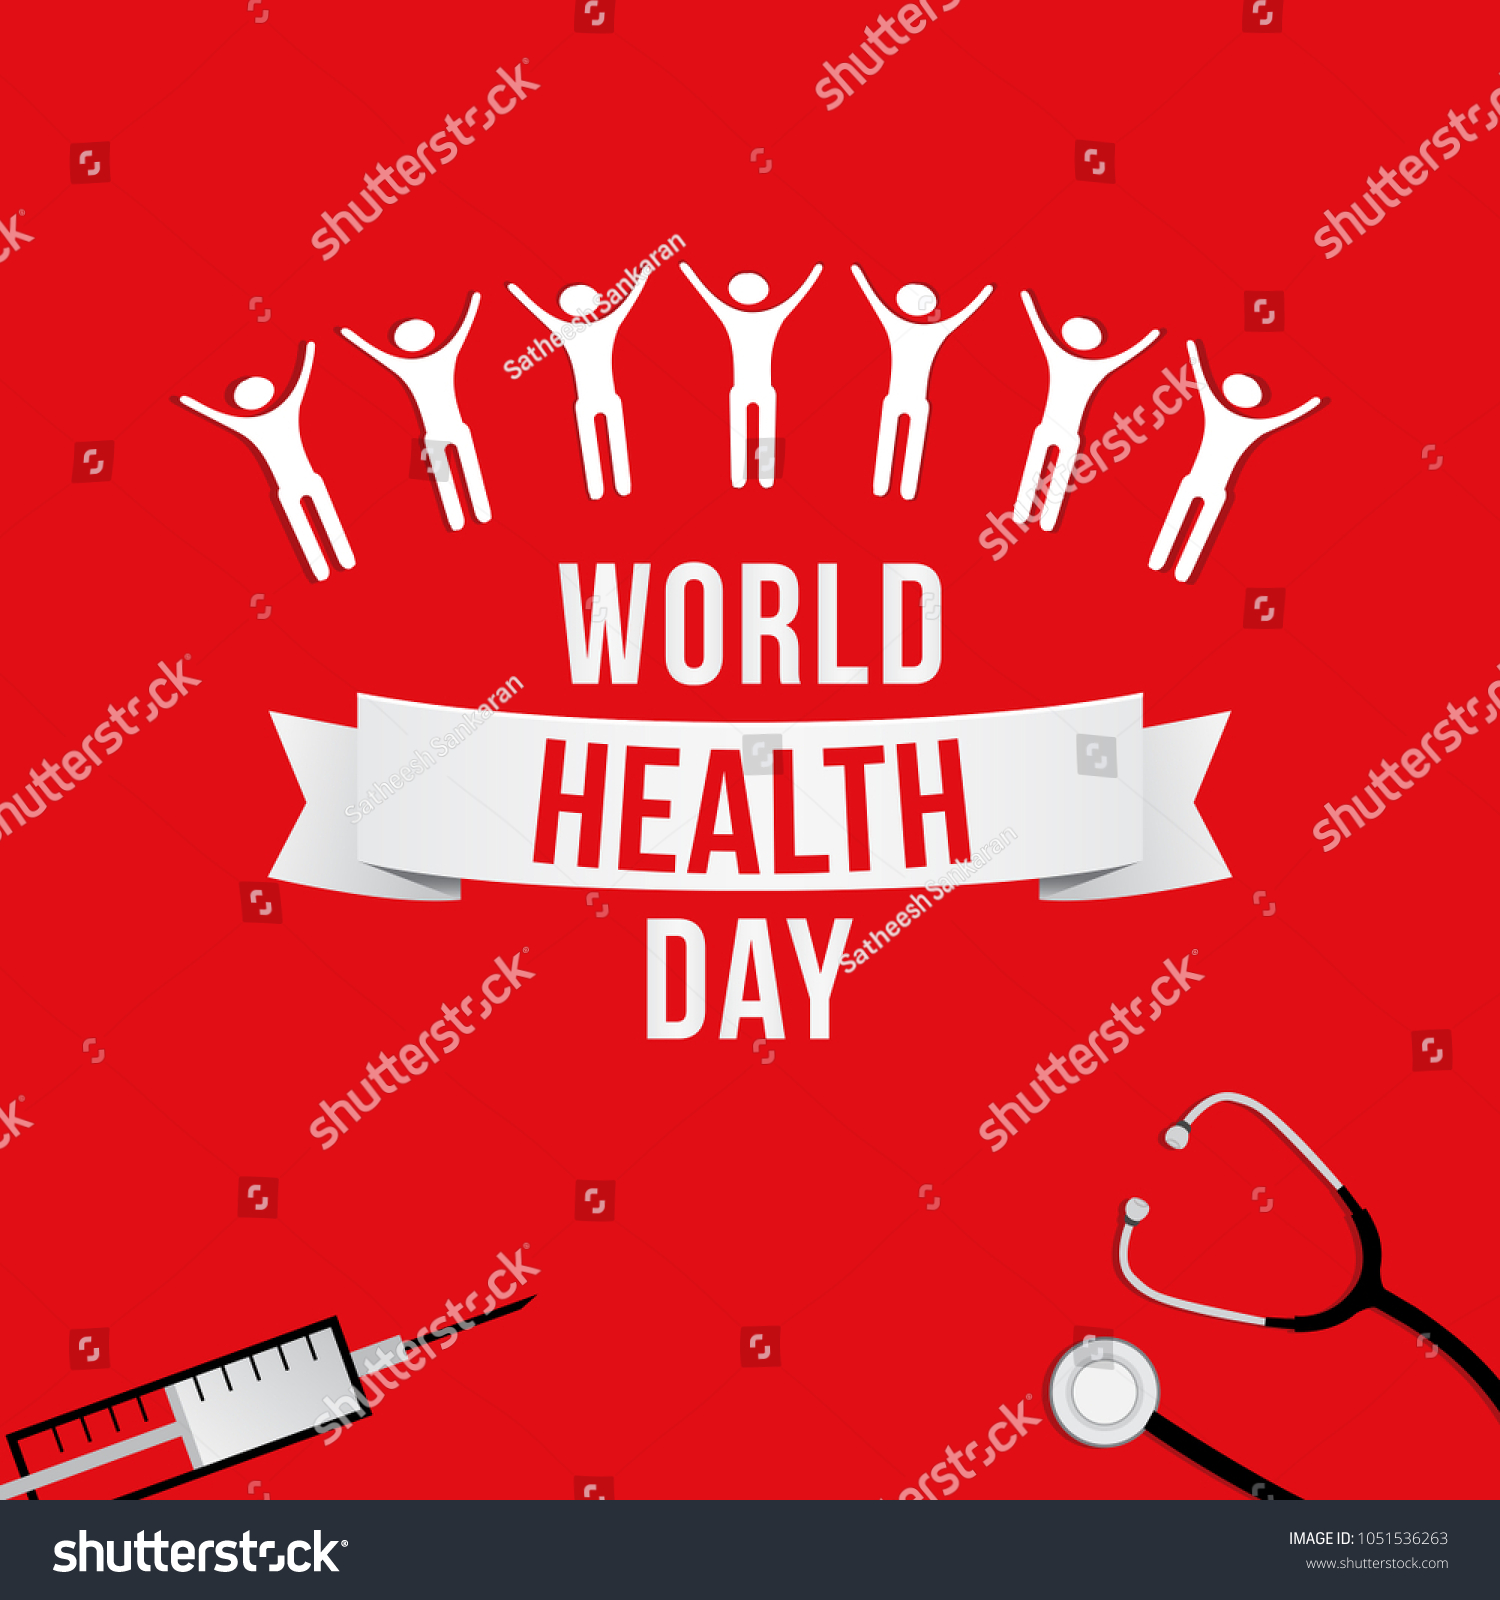 Creative Vector Illustration For World Health Day Campaigns Can Be Used Posters Web